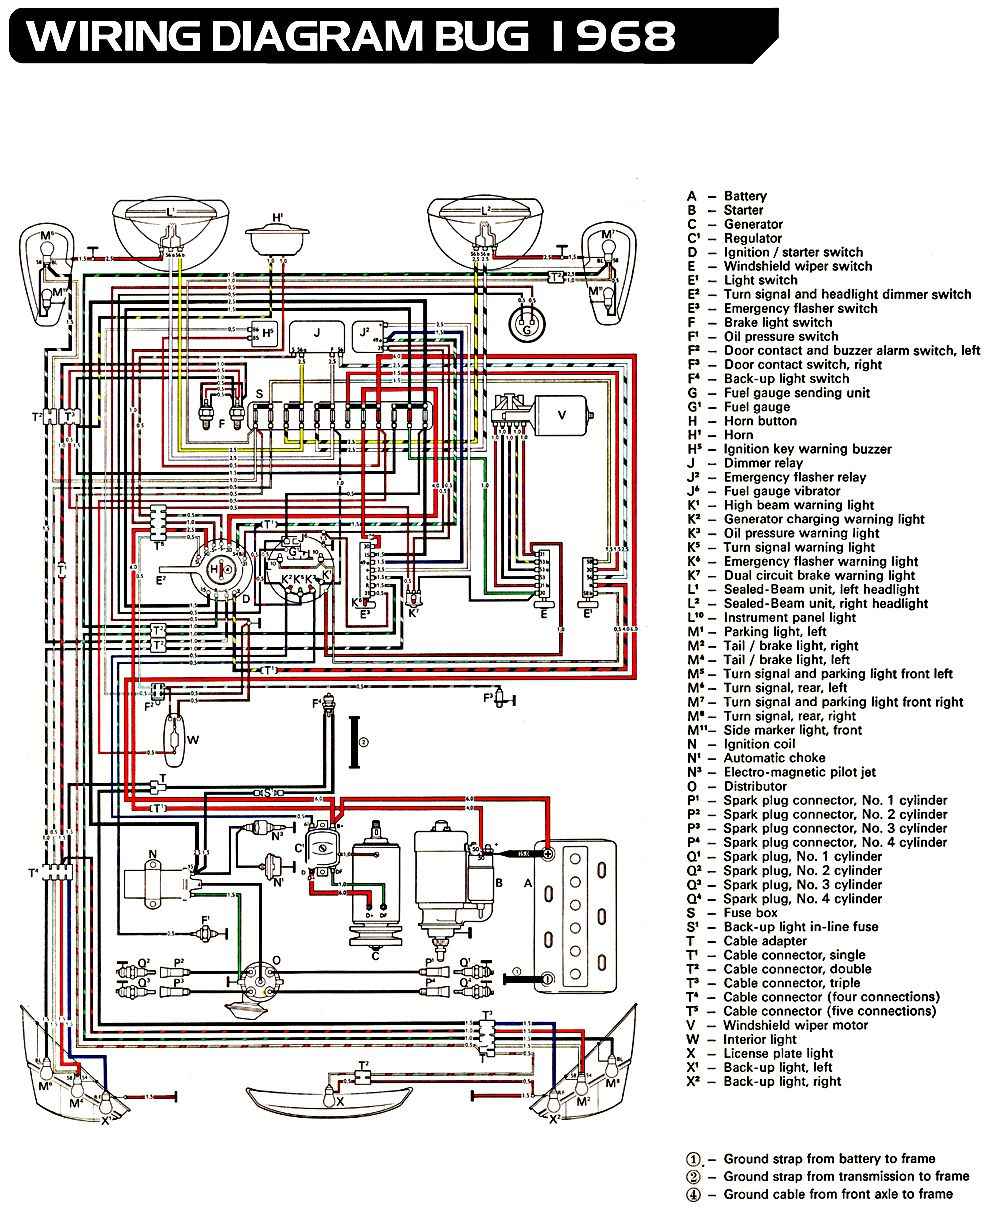 DIAGRAM] 69 Vw Ignition Wiring Diagram FULL Version HD Quality Wiring  Diagram - LOST-DIAGRAM.EXPERTSUNIVERSITY.ITDiagram Database - Expertsuniversity.it